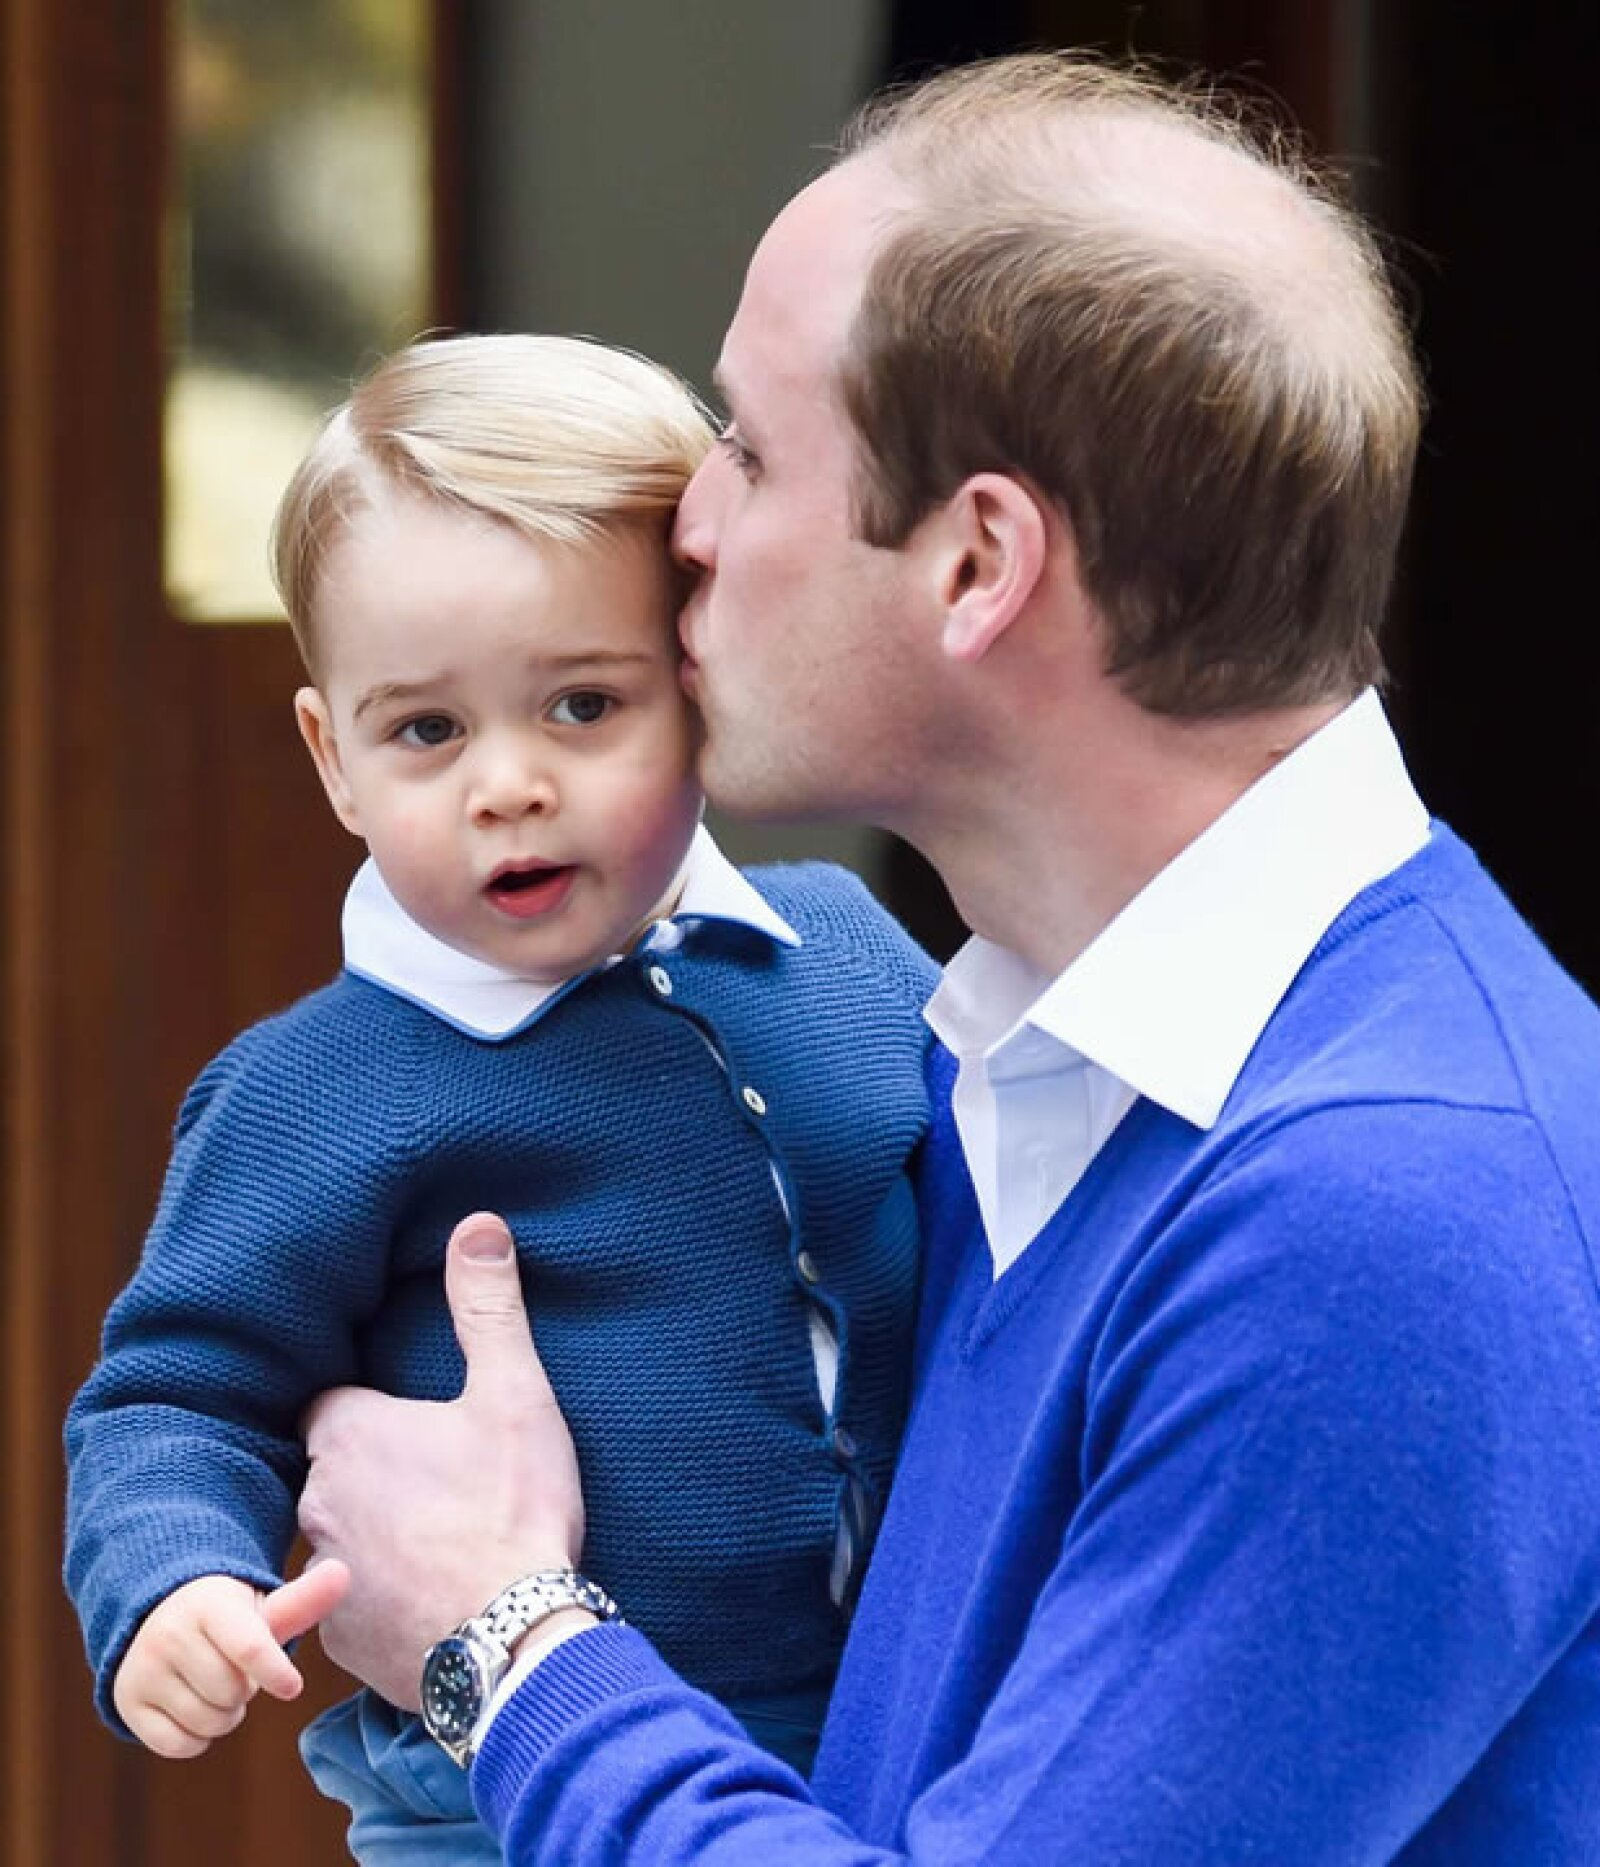 George y William llegan al hospital de St. Mary´s tras el nacimiento de la princesa Charlotte.